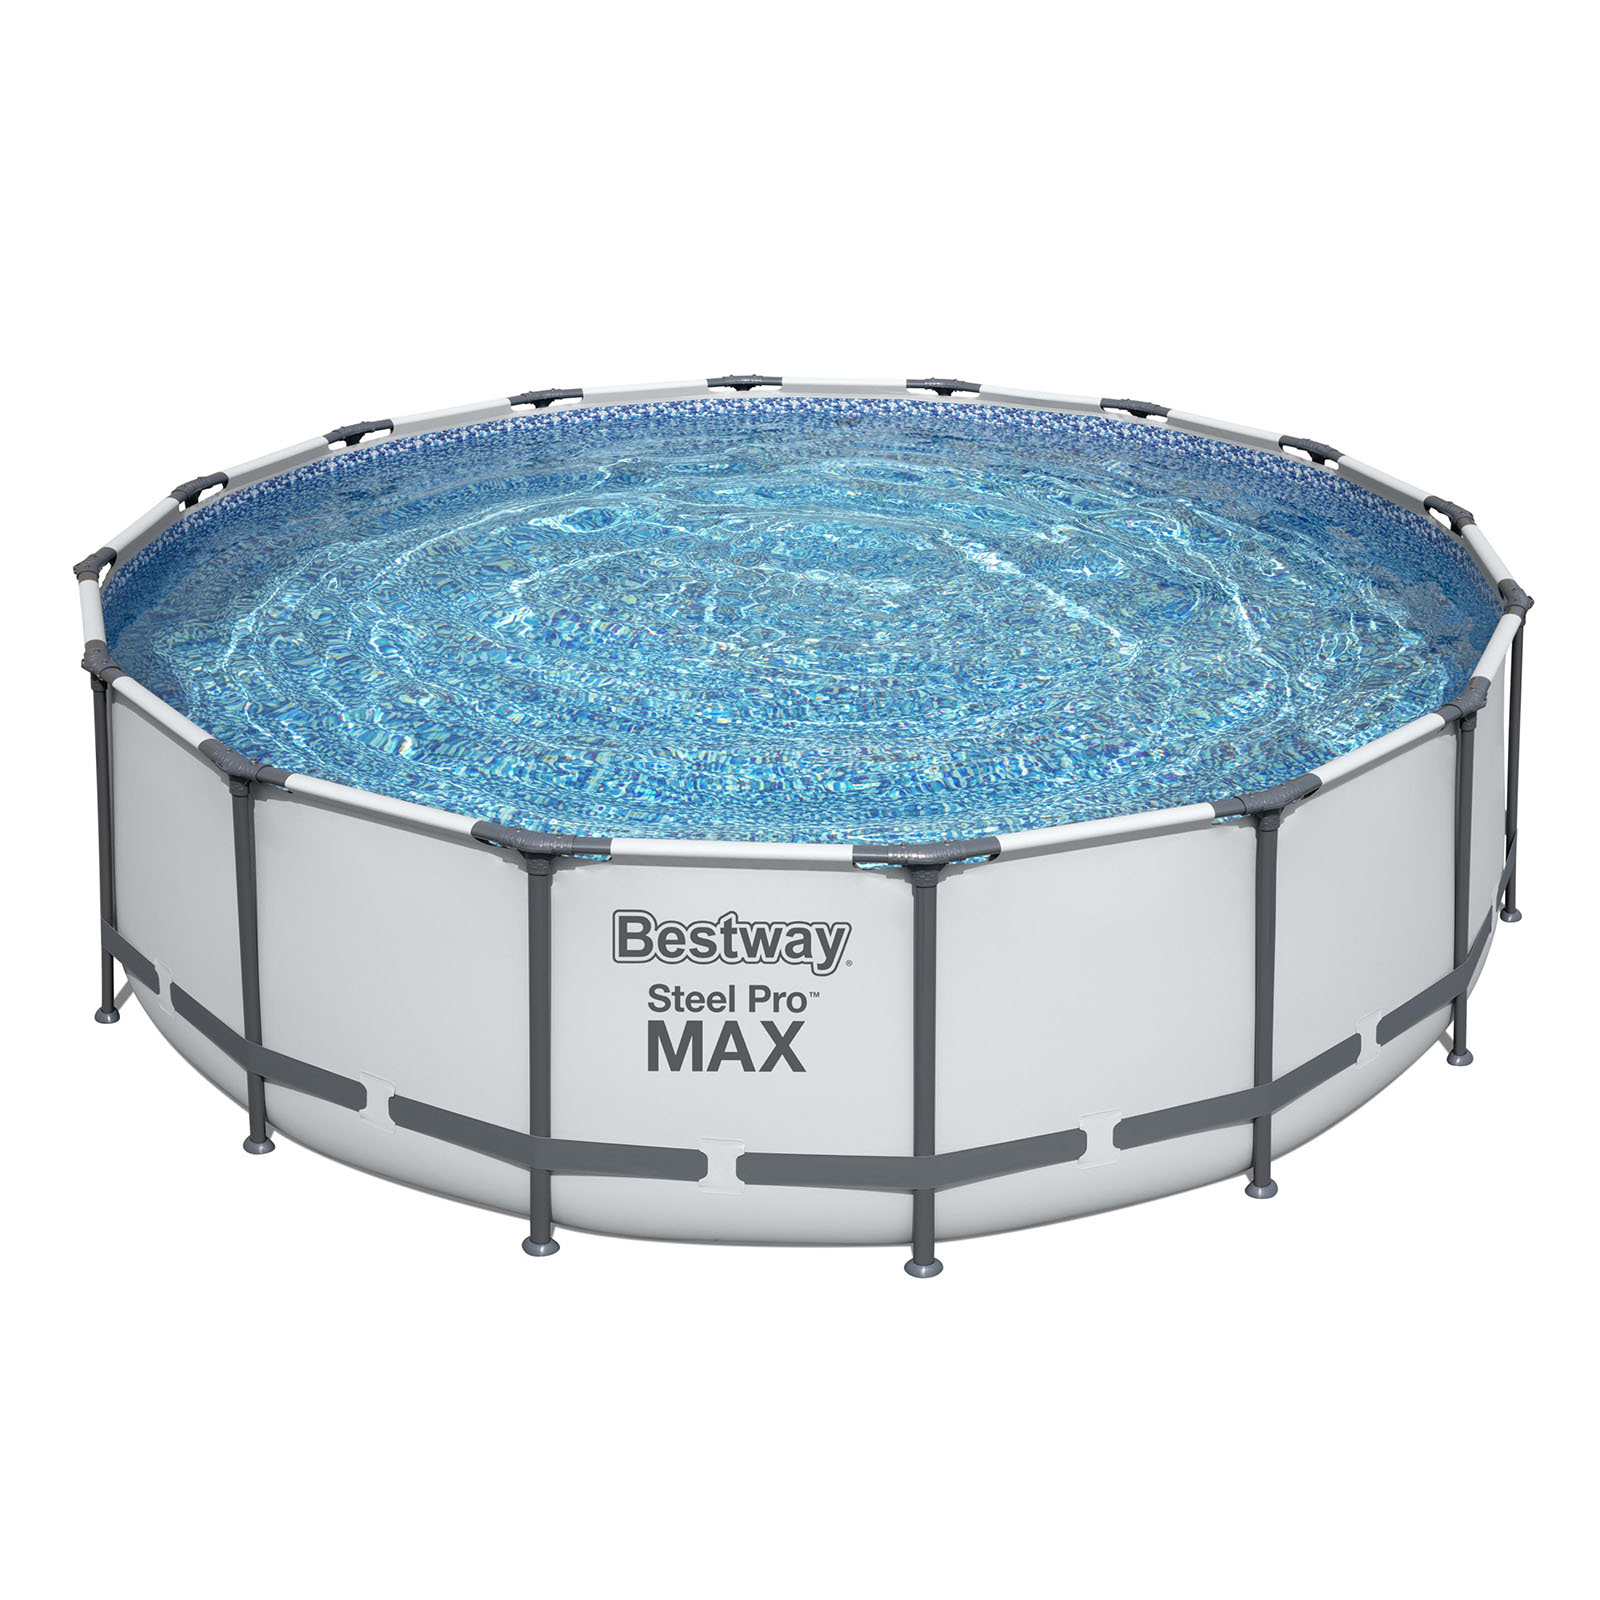 Bestway Above Ground Pool Swimming Pool Steel Pro MAX 4.88m x 1.22m Filter Pump